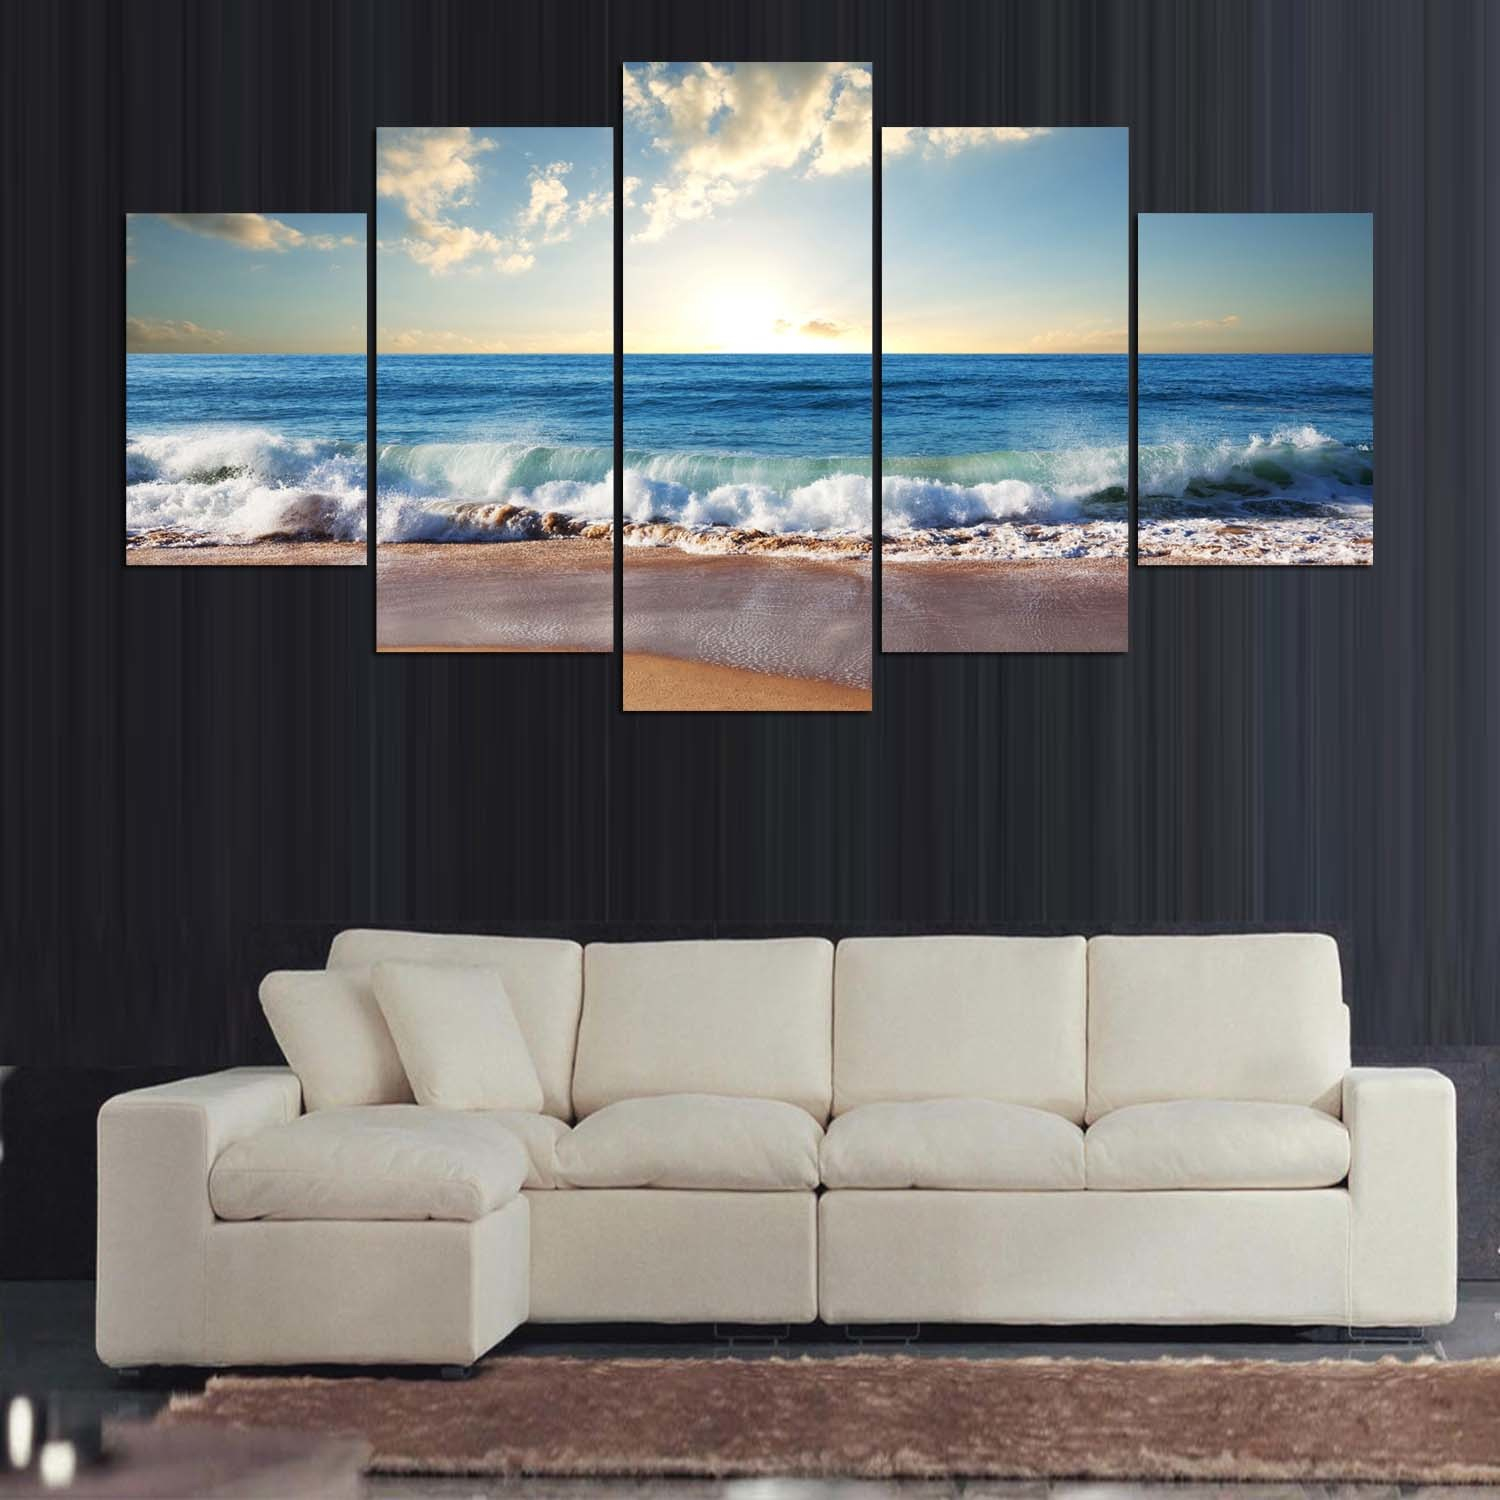 5 Panels Blue Sea Water Picture Modern Wall Decor Print on Canvas Oil Painting Canvas Painting Mc-163